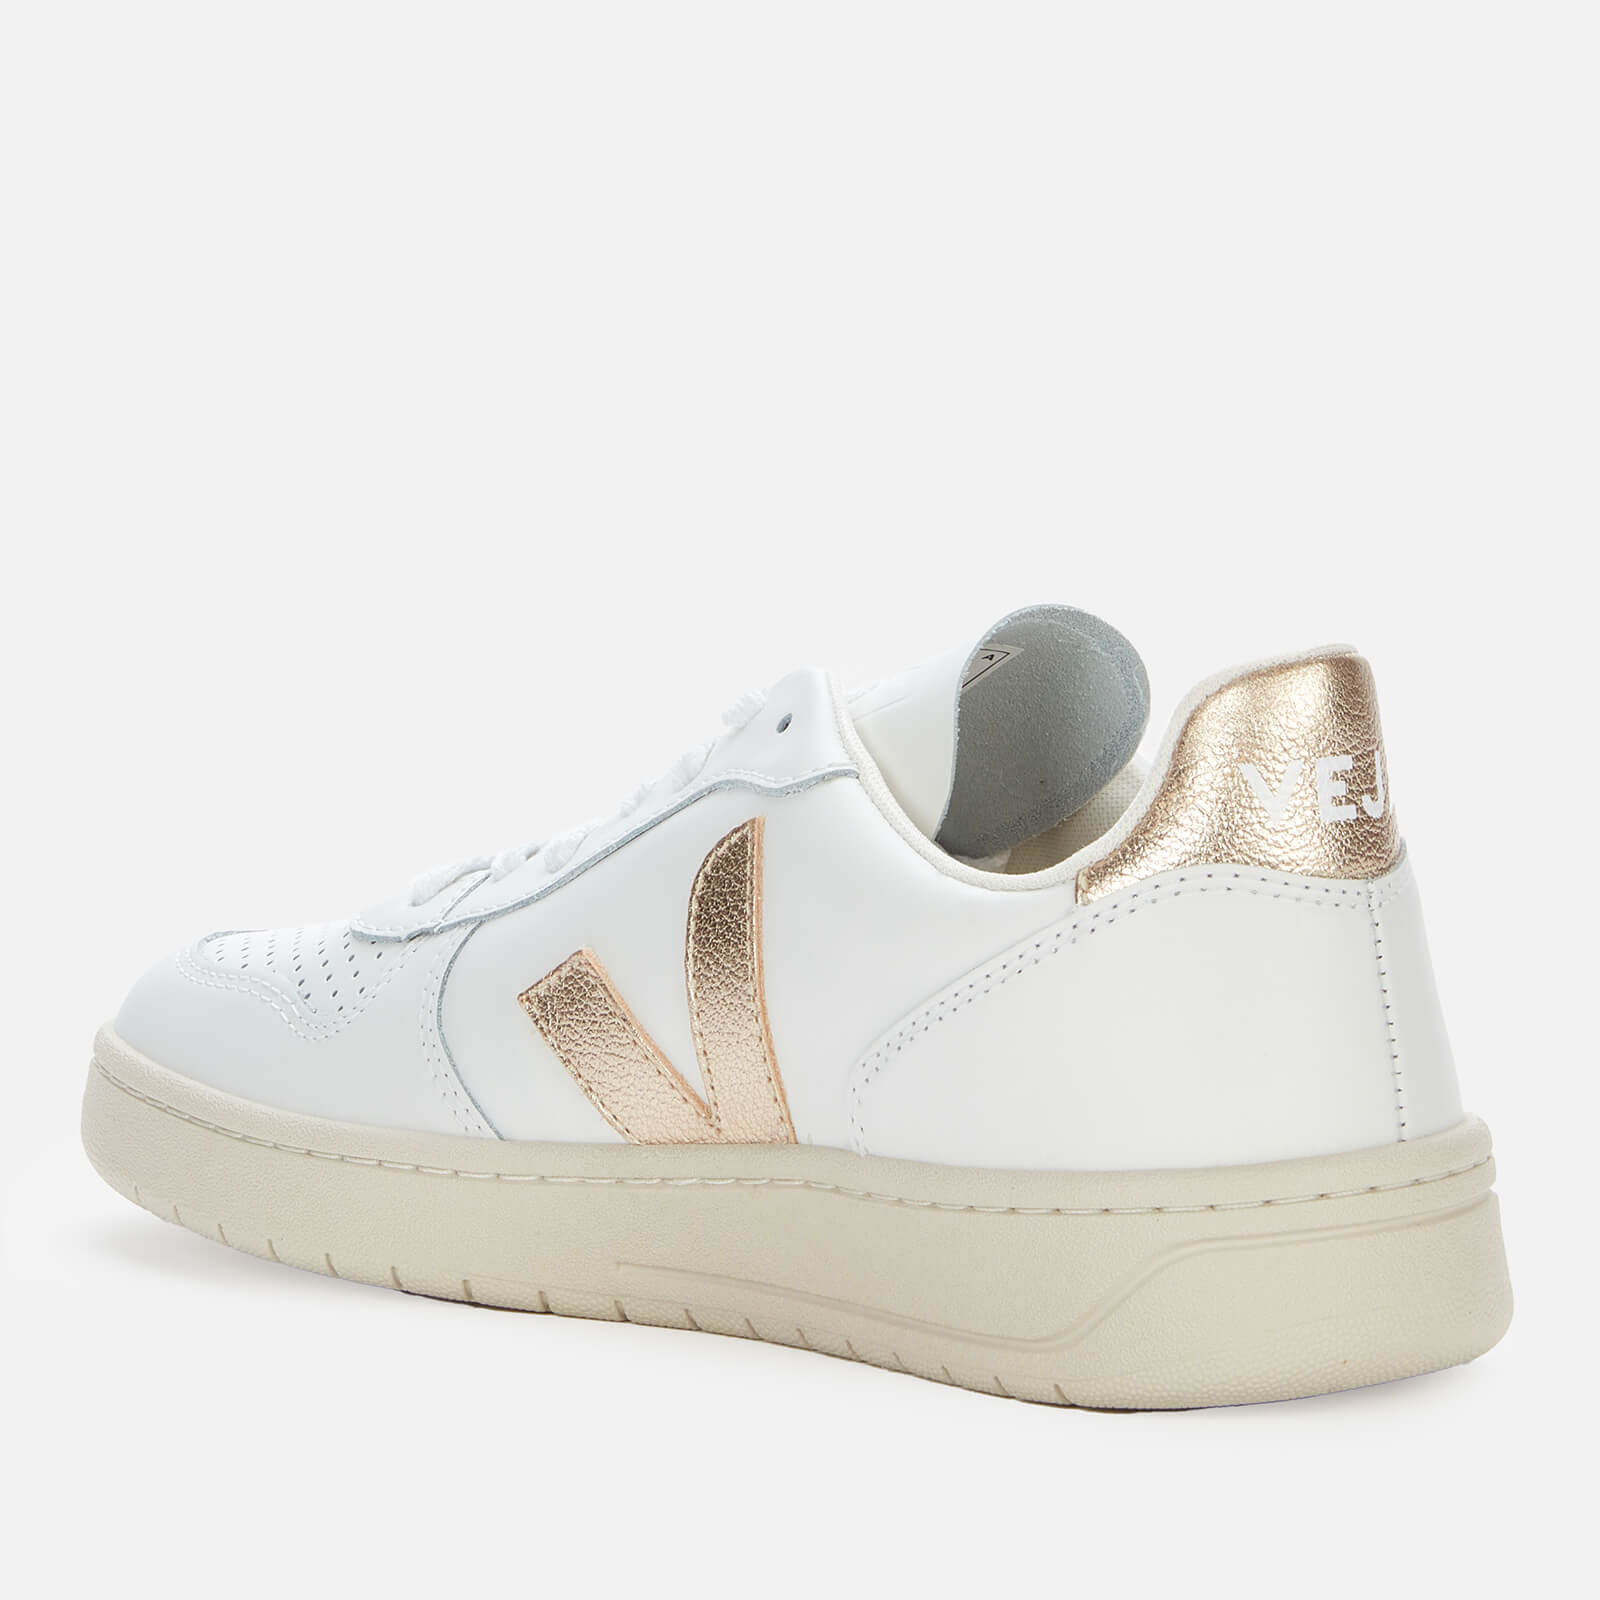 Veja Women's V10 Leather Trainers - Extra White/Platine